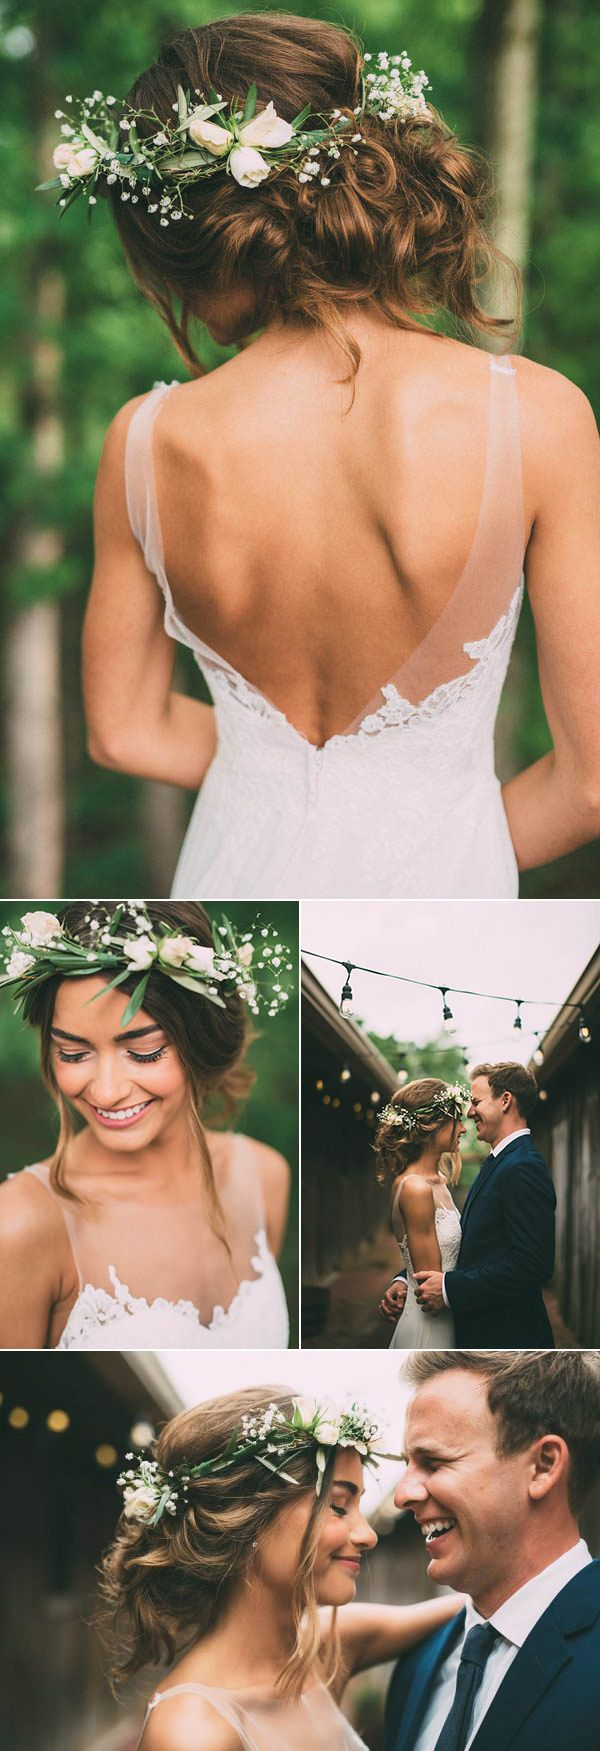 Messy bridal updo with floral crown | Image by The Image Is Found